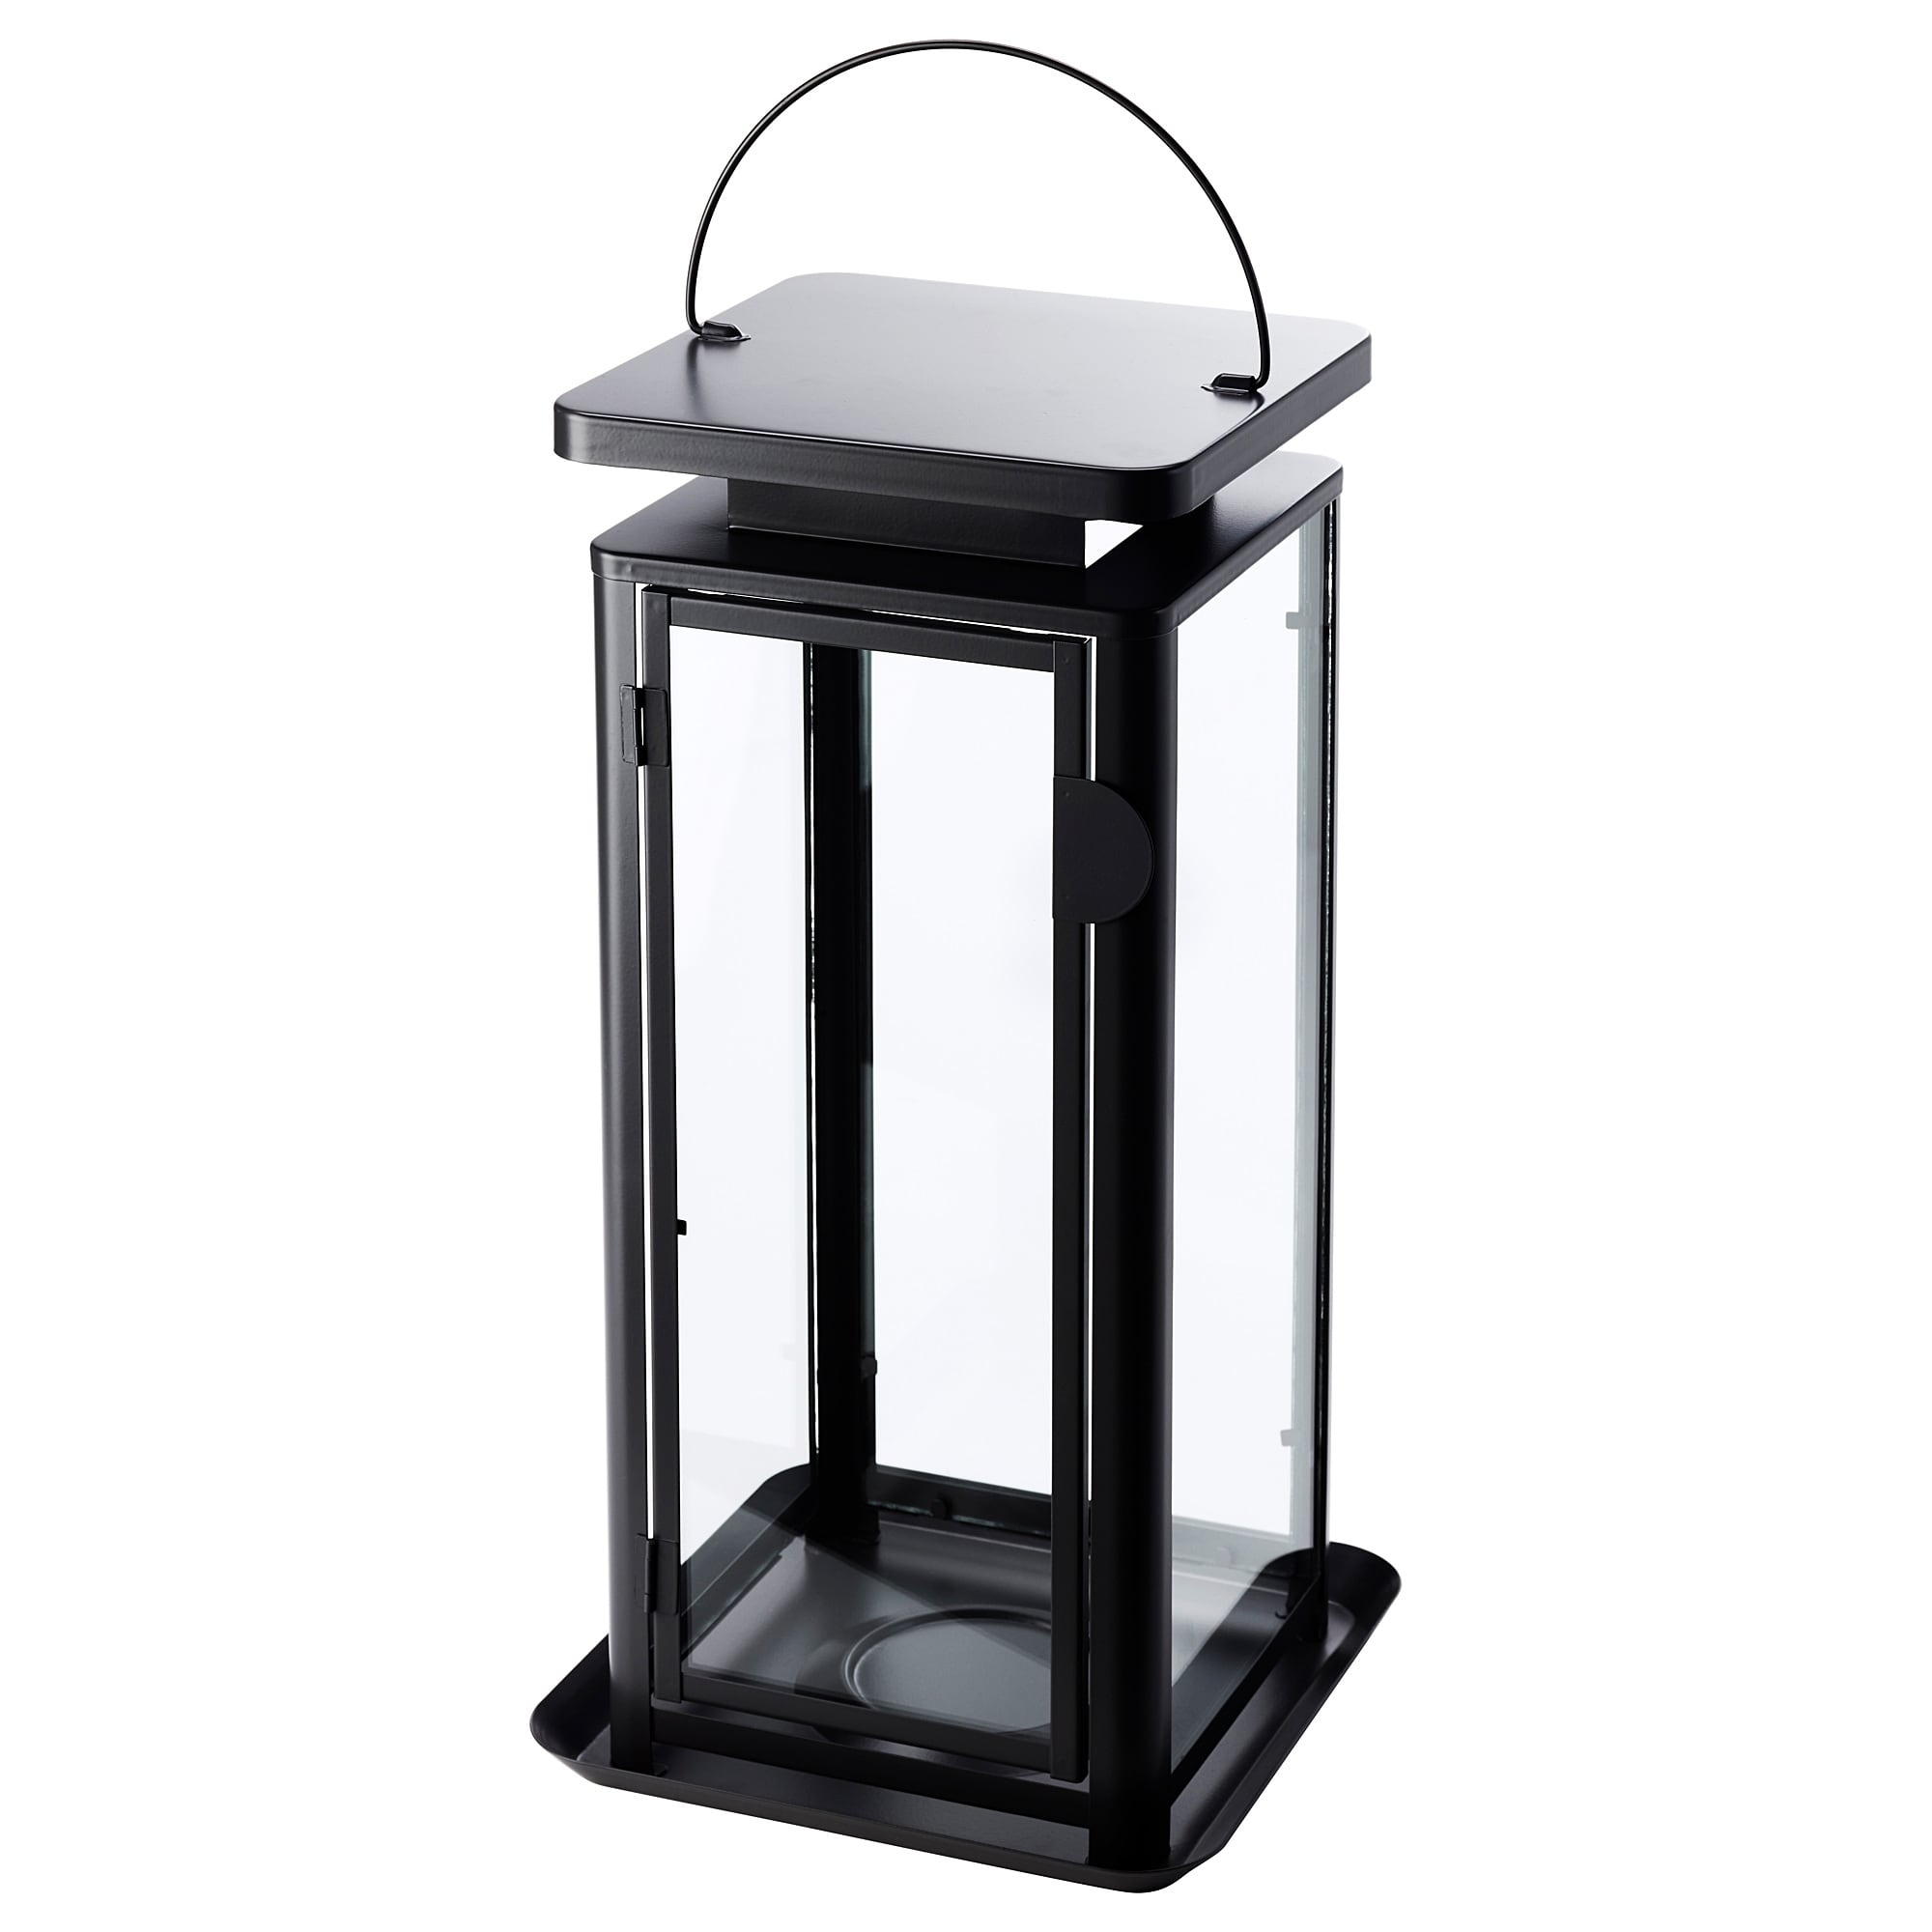 Sinnesro Lantern F Block Candle, In/outdoor Grey 45 Cm - Ikea within Outdoor Grey Lanterns (Image 19 of 20)